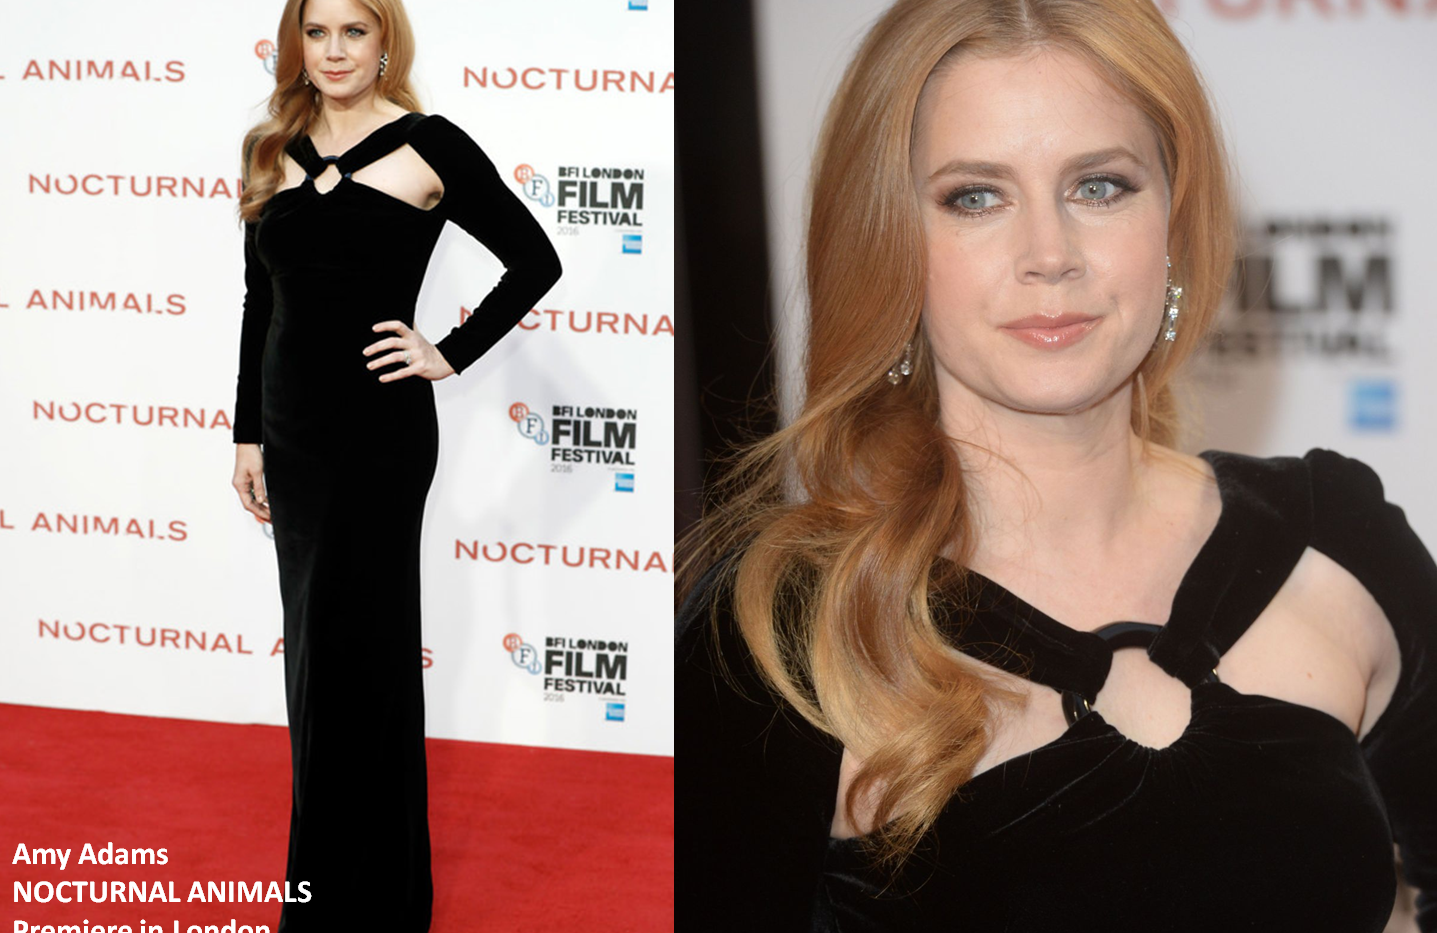 "Amy Adams at ""Nocturnal Animals"" premiere in London wearing black velvet gown - Project for TOM FORD - pattern making - dressmaking - fitting / tailoring - managing - garment technology consult"